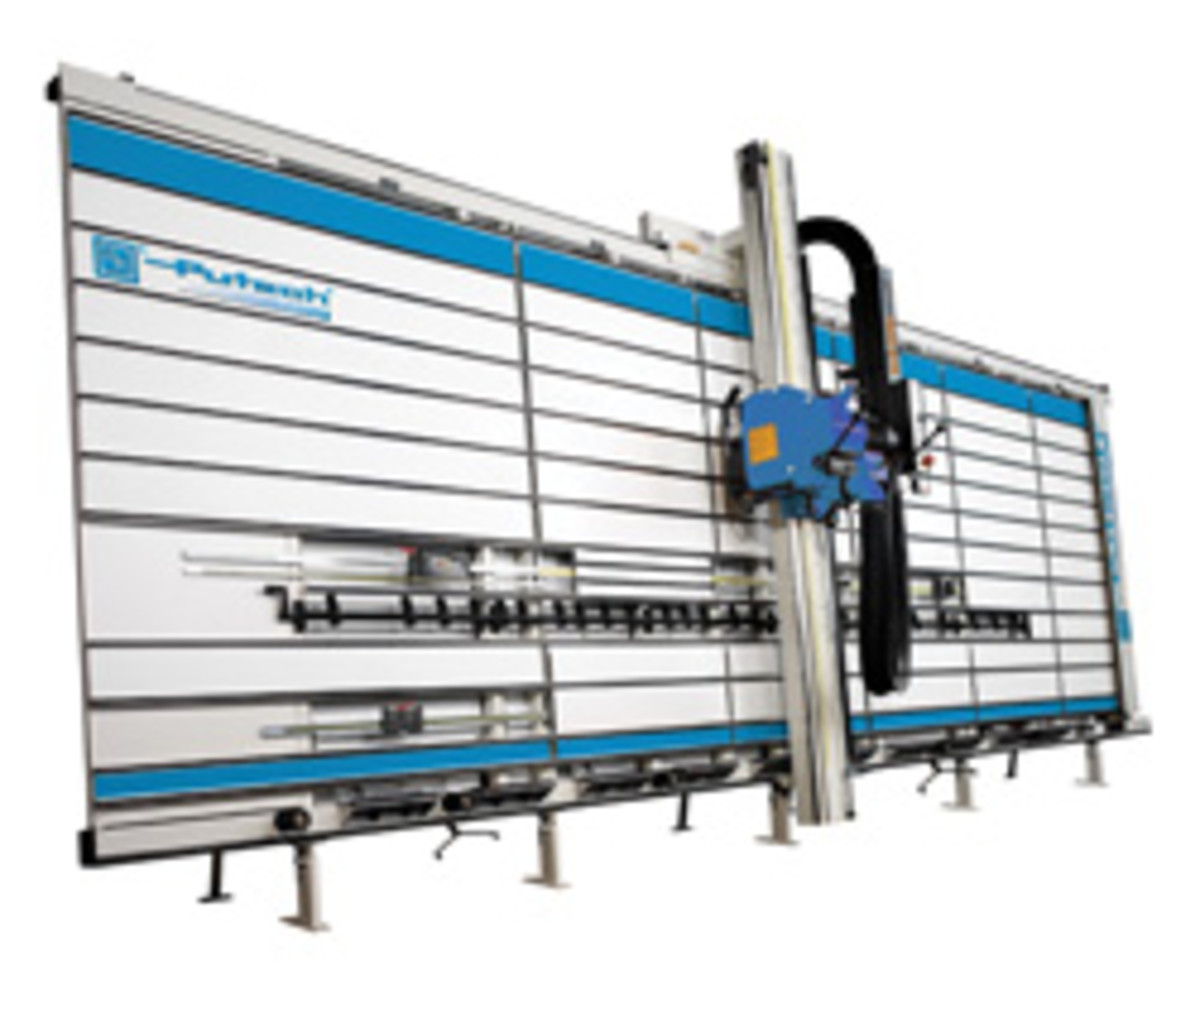 The Putsch model 950 vertical panel saw.